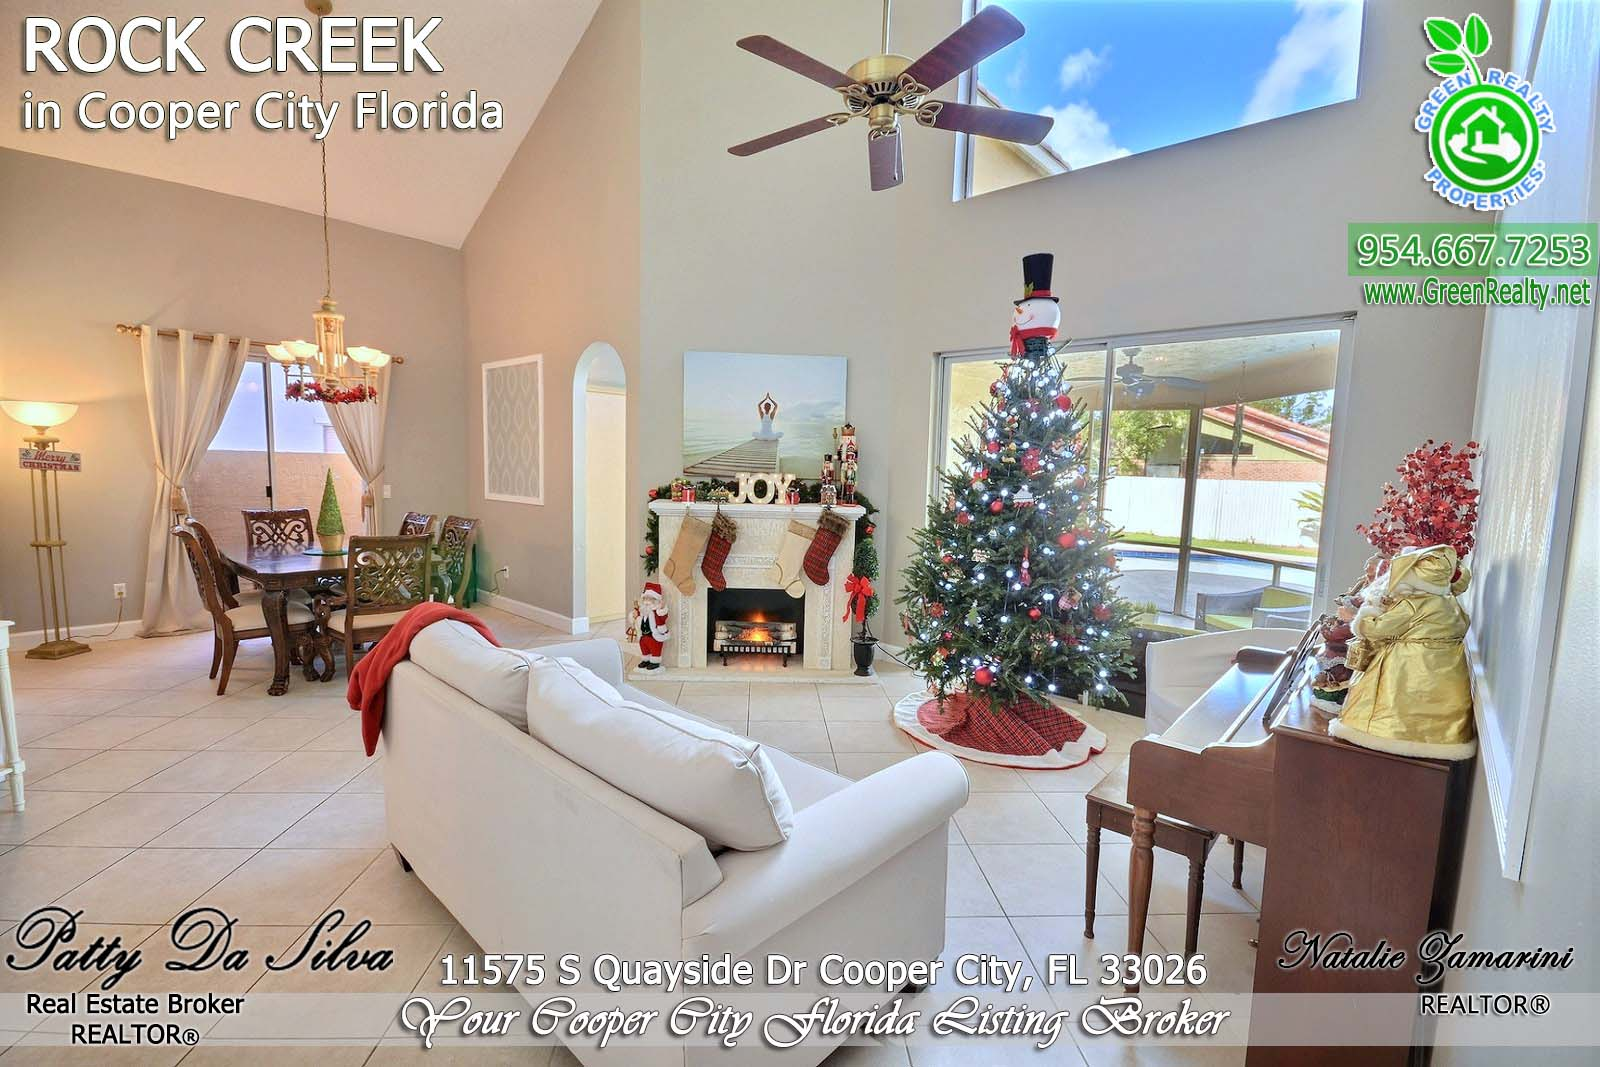 5 Homes For Sale in Rock Creek Cooper City